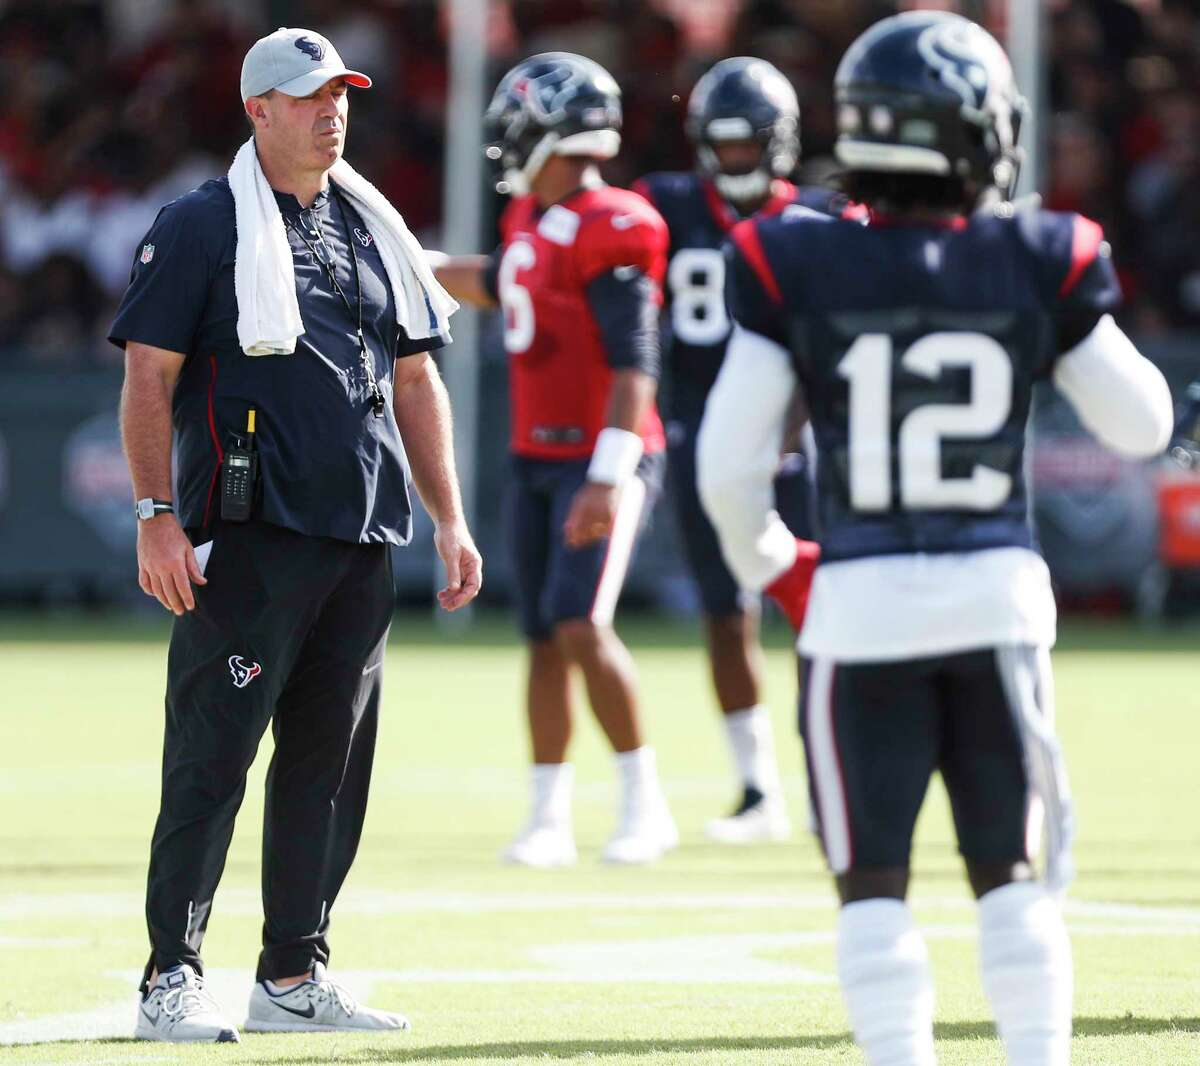 Houston Texans head coach Bill O'Brien runs a joint practice betwen the Texans and San Francisco 49ers at the Methodist Training Center on Wednesday, Aug. 15, 2018, in Houston.